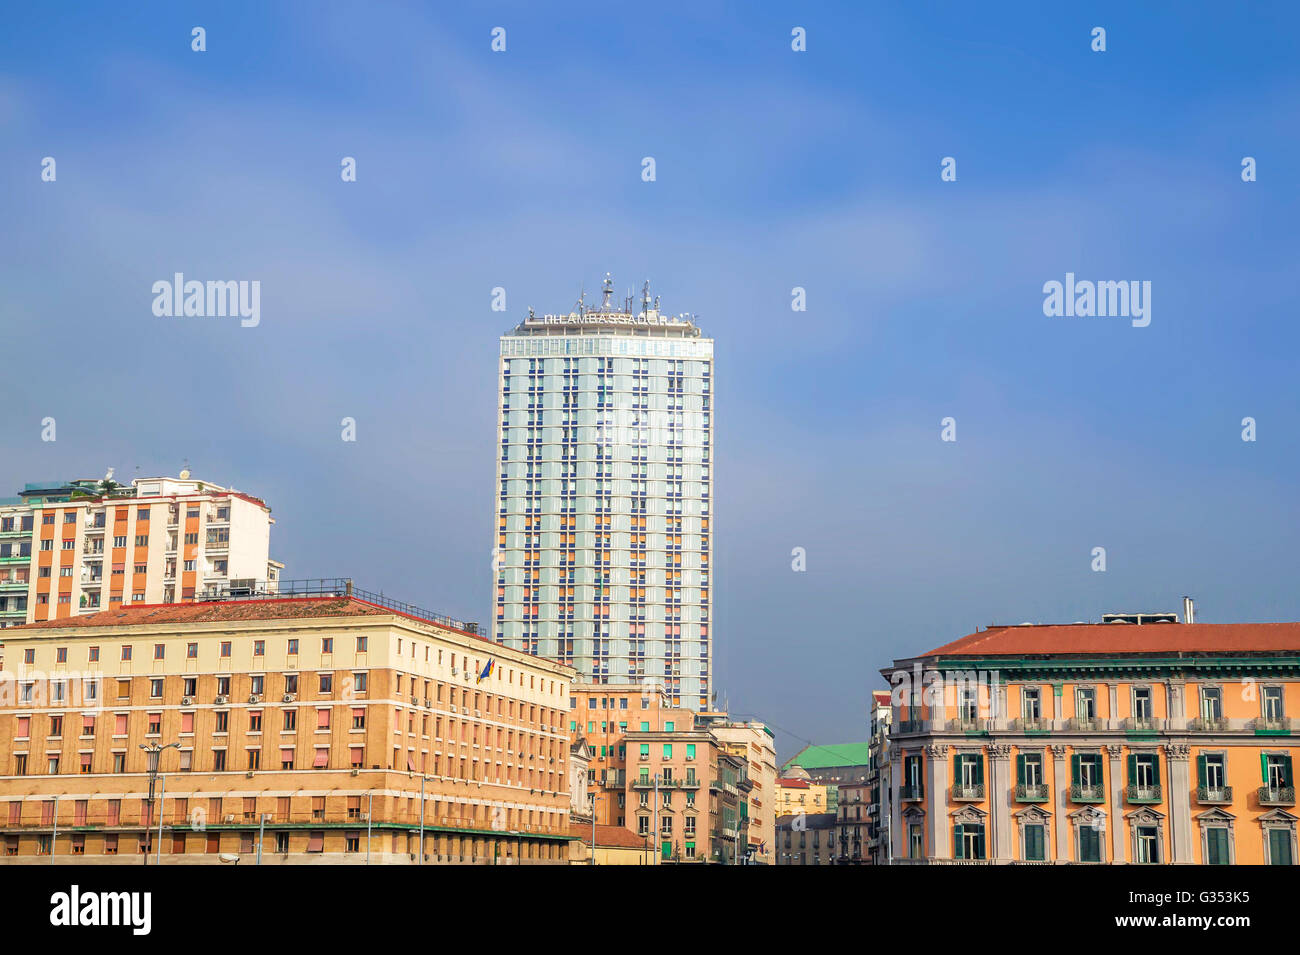 Ambassador Hotel and building architecture in Naples,Italy - Stock Image